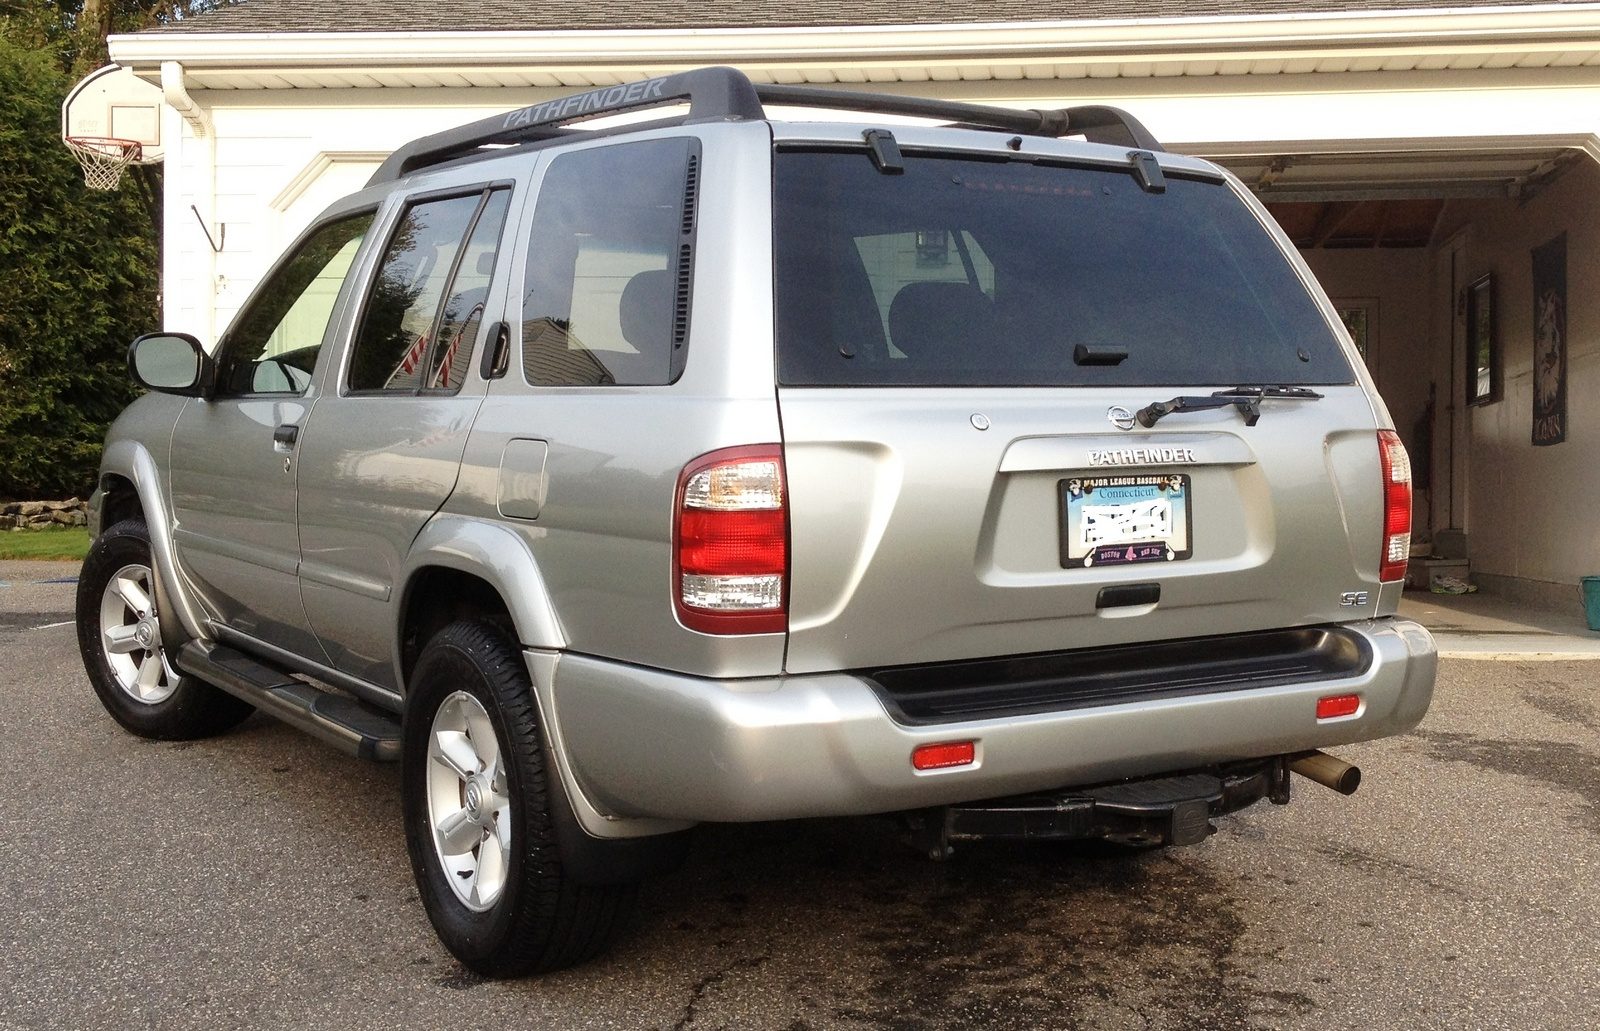 2012 Nissan Pathfinder Reviews >> 2004 Nissan Pathfinder - Pictures - CarGurus